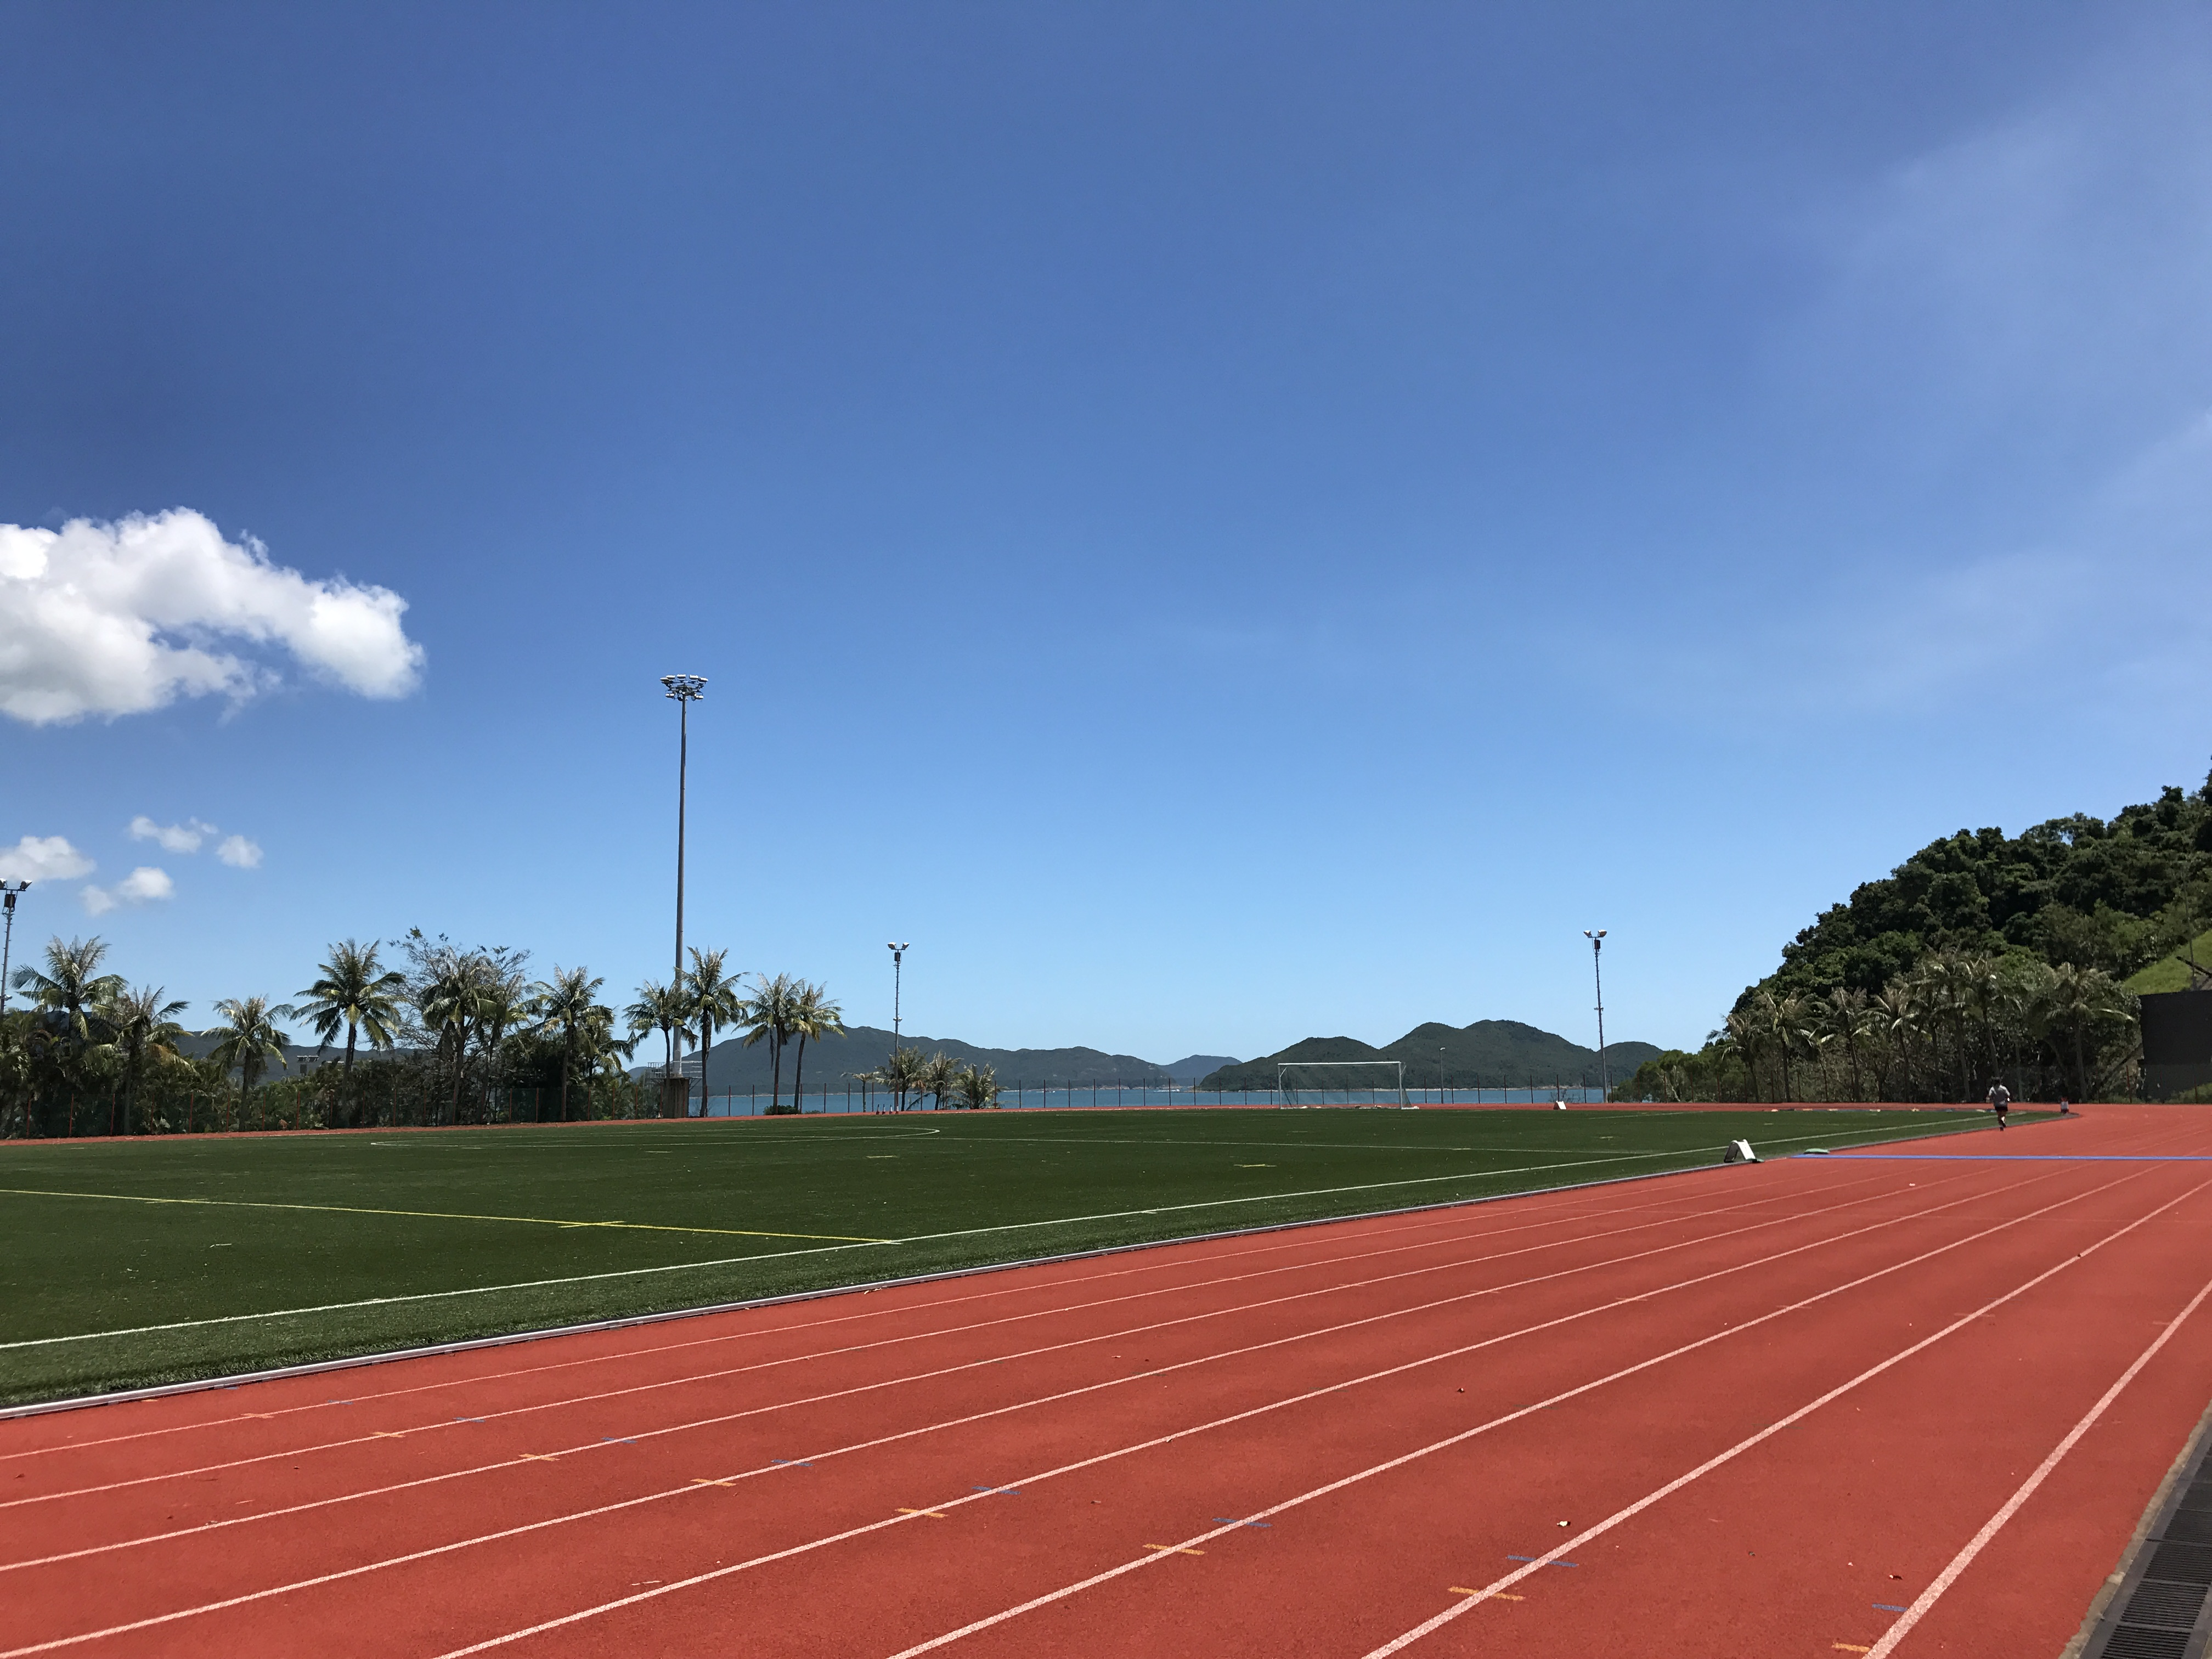 hkust_playeground